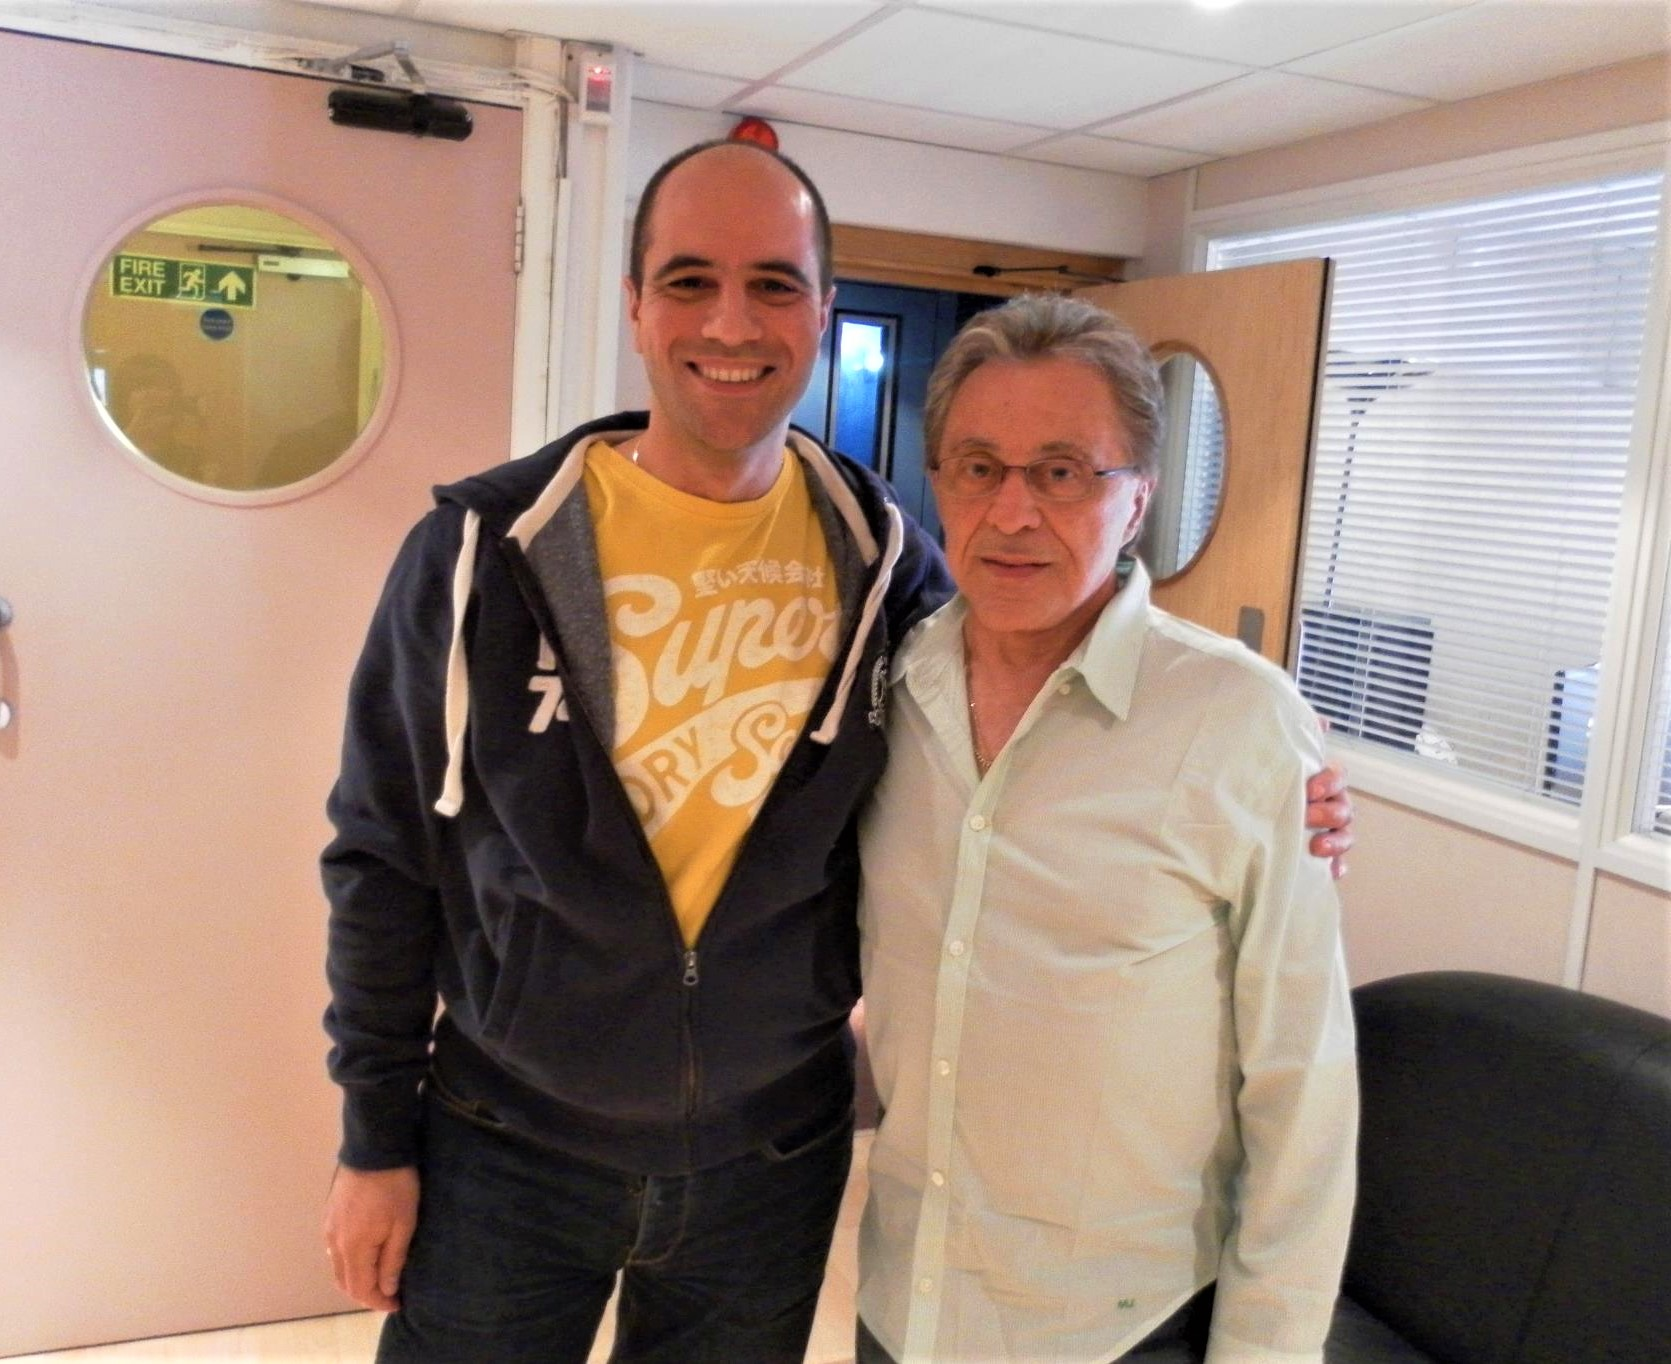 Philip Chryssikos with American singer and actor, Frankie Valli